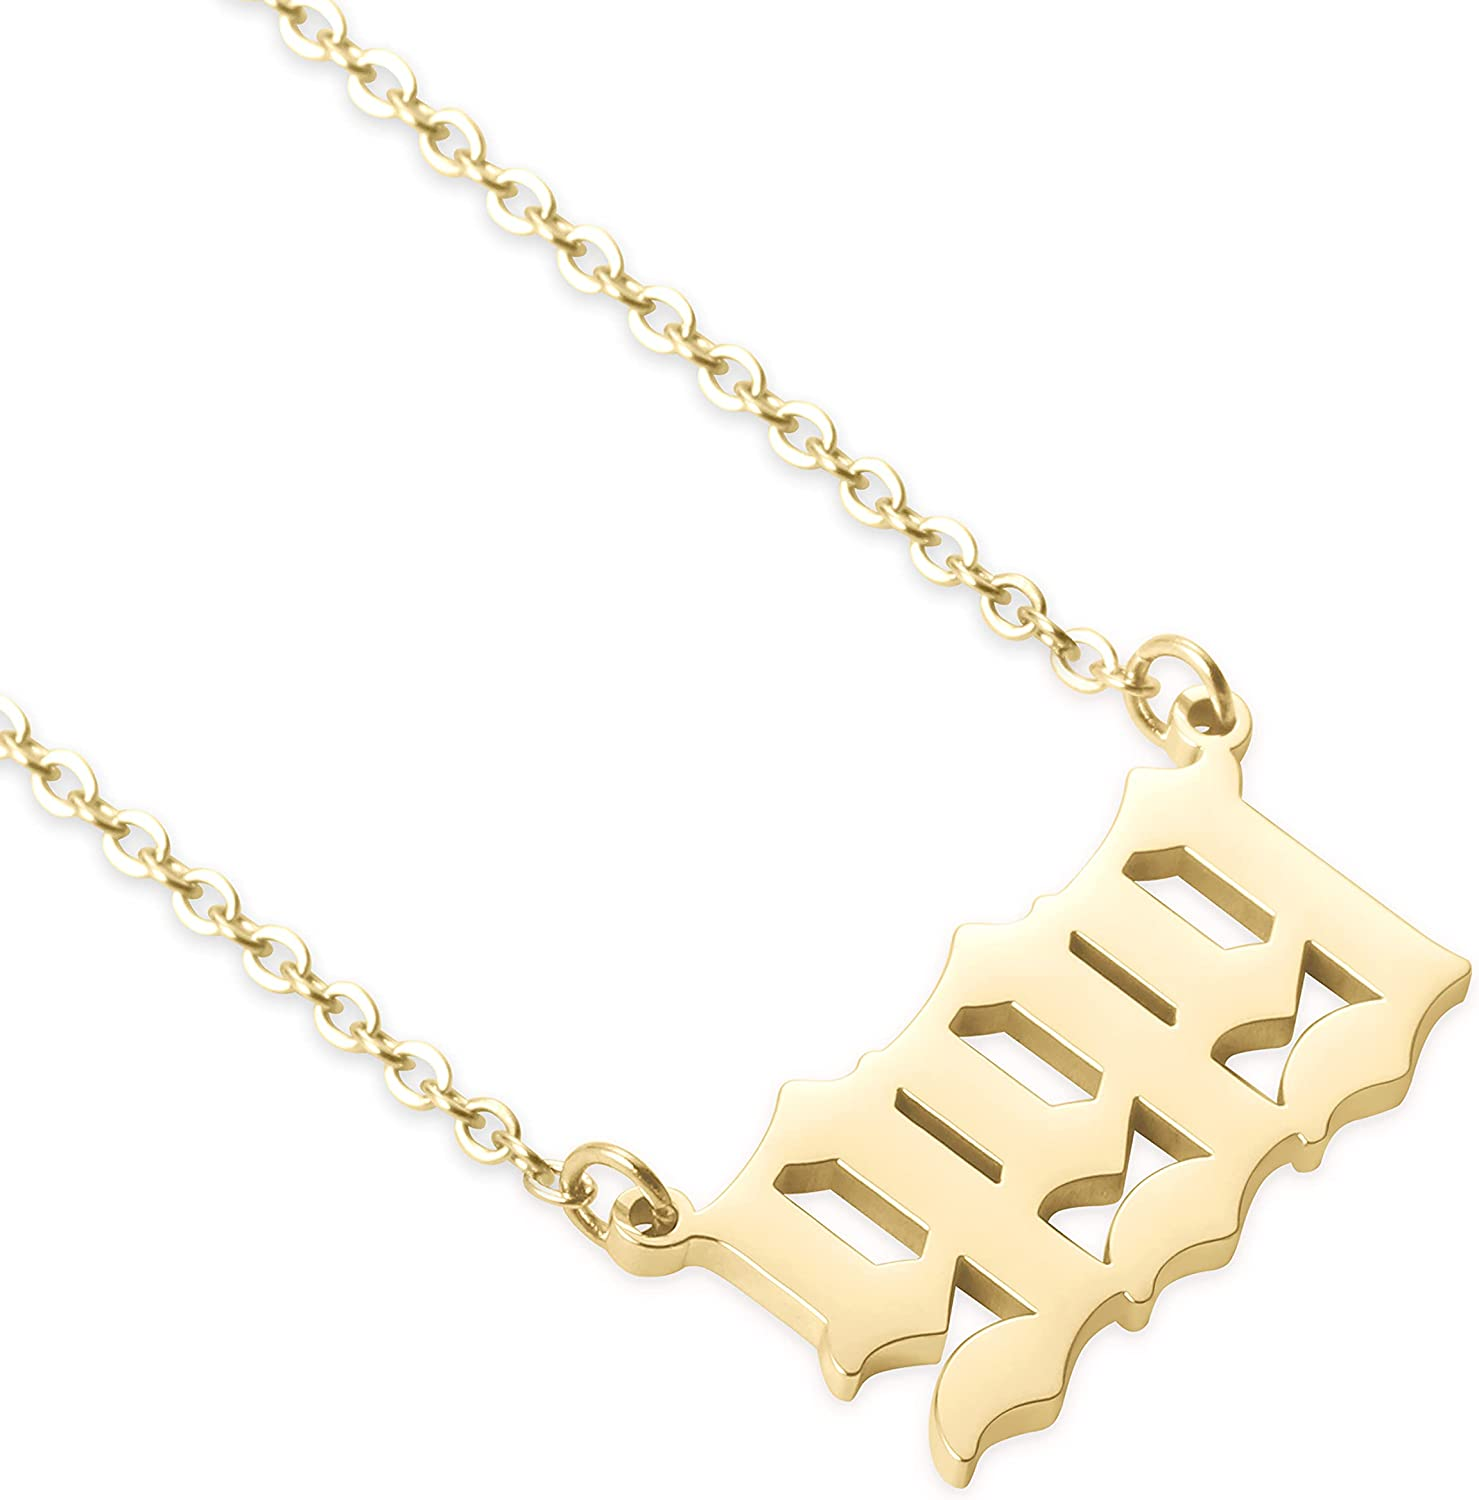 Angel Number Necklace for Women 111 222 666 333 777 555 Manufacturer regenerated product 444 888 Daily bargain sale